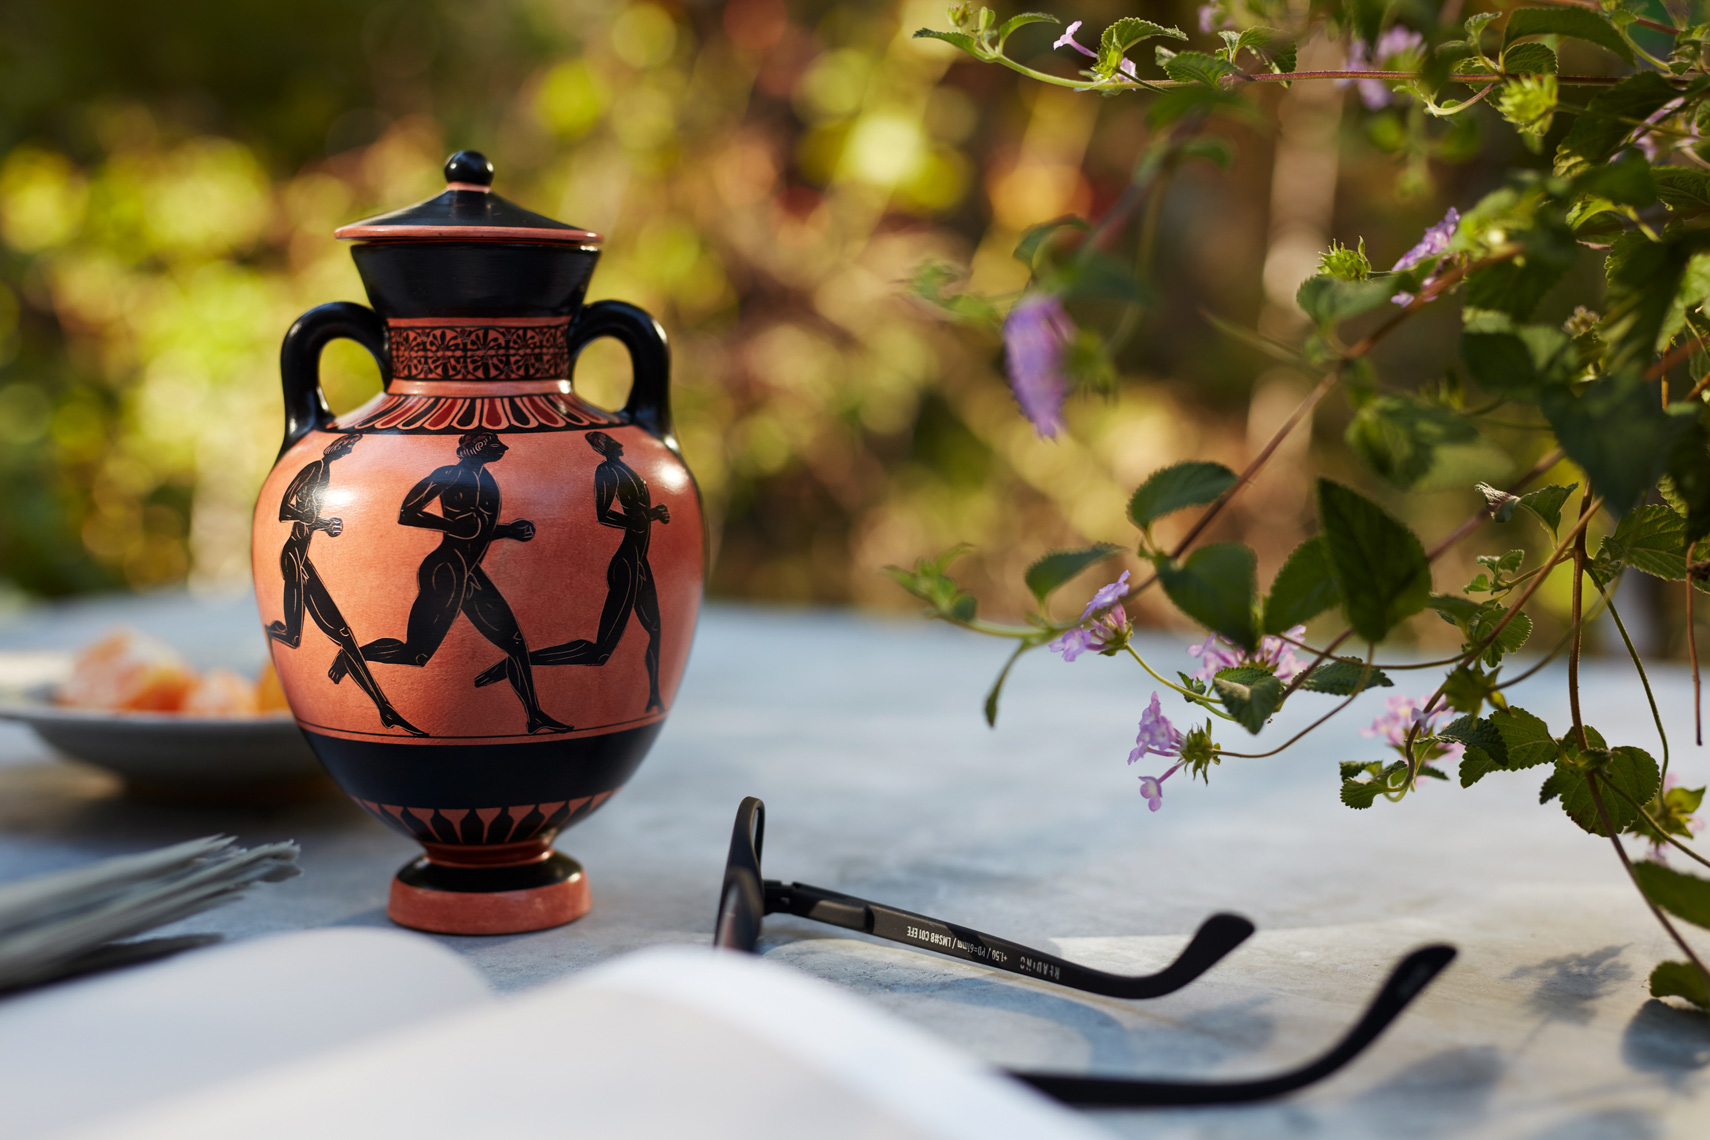 Grecian urn in garden with flowers and glasses